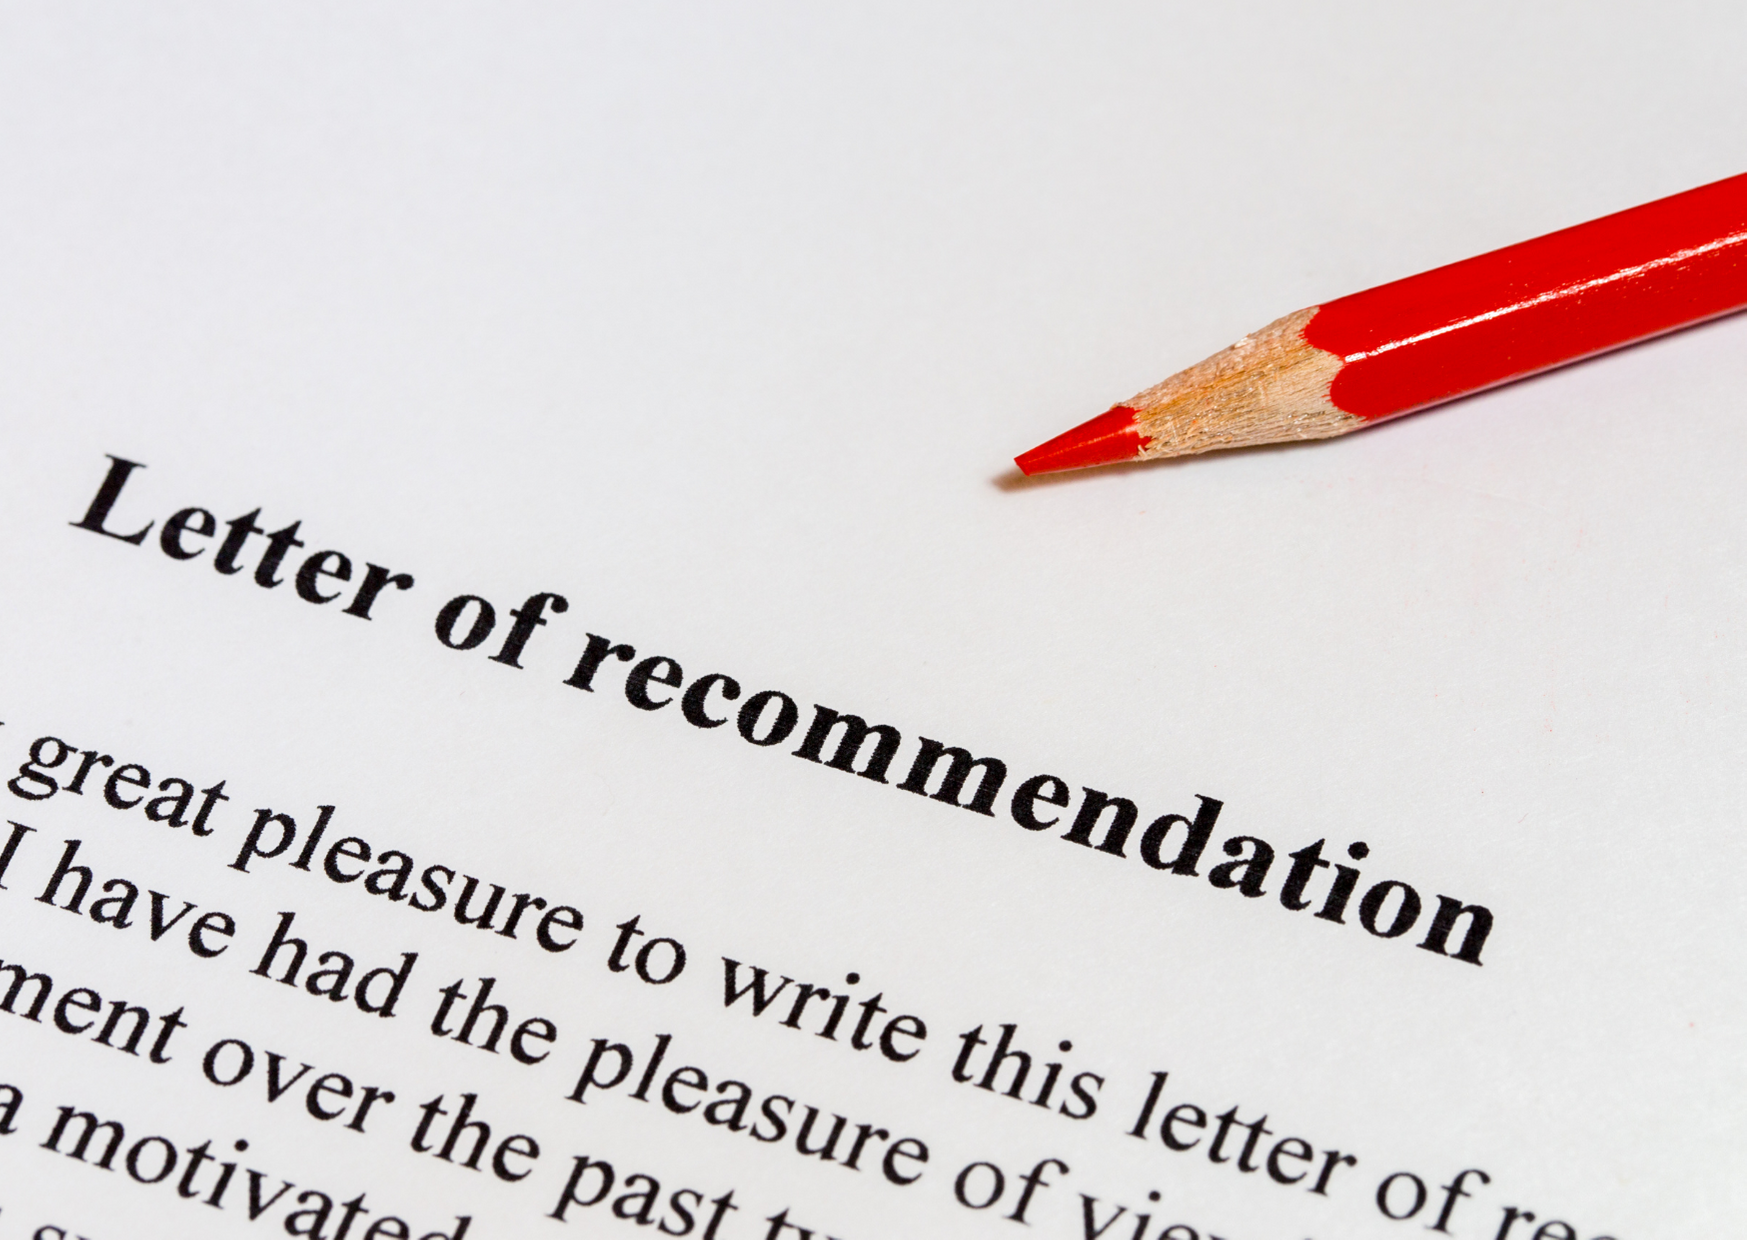 letter of recommendation image